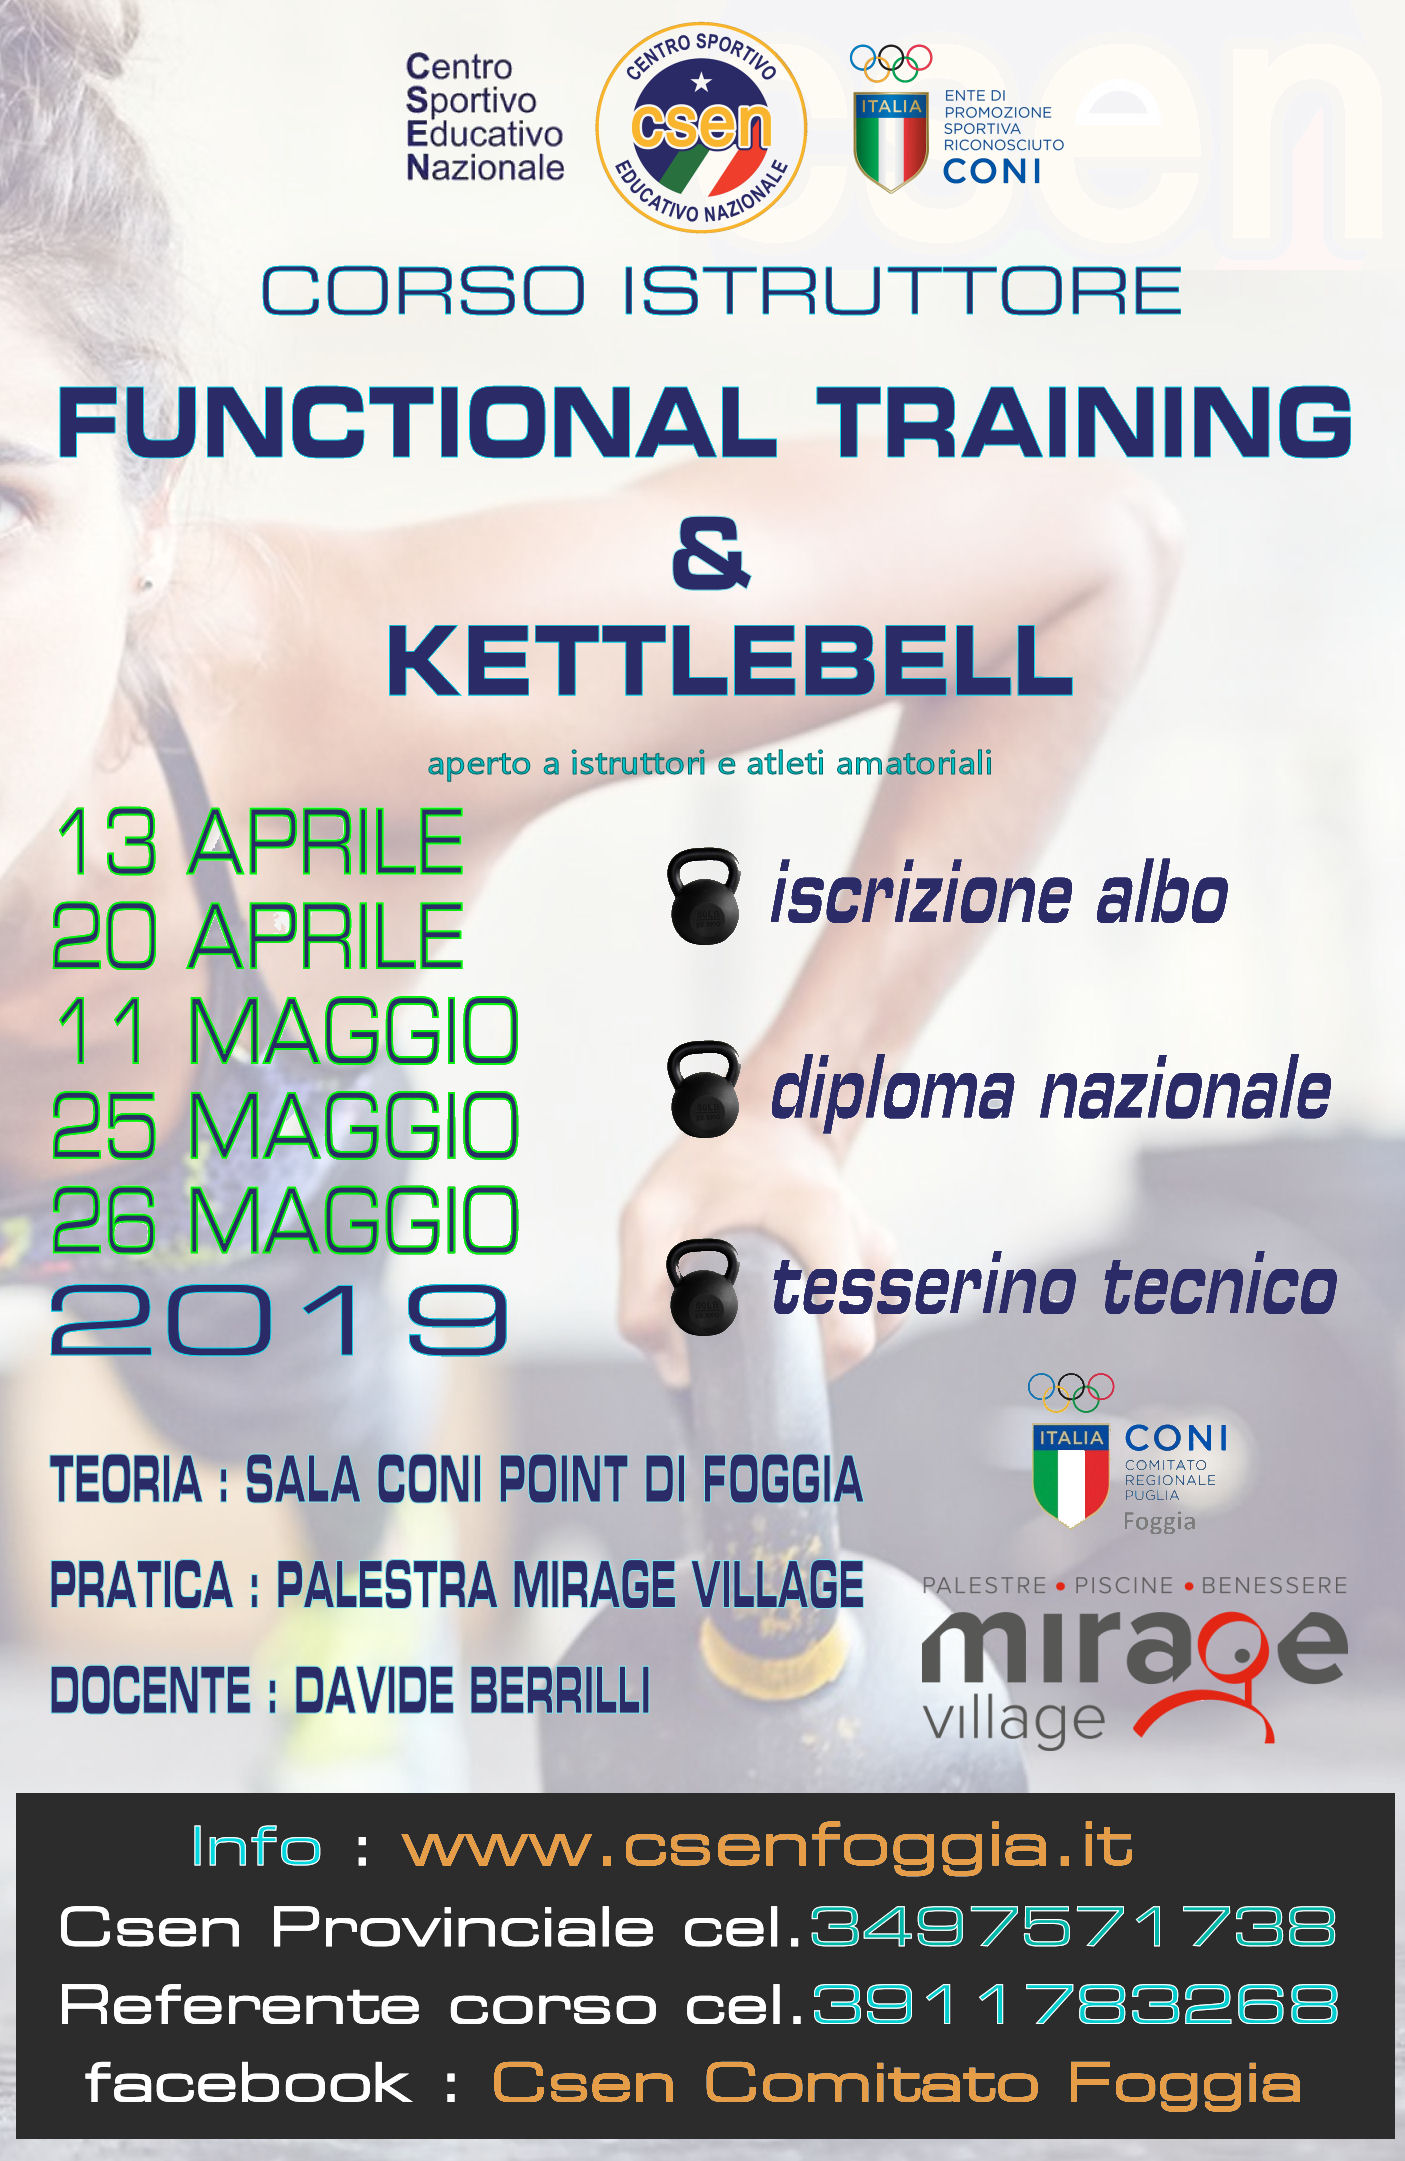 Corso istruttore Functional Training